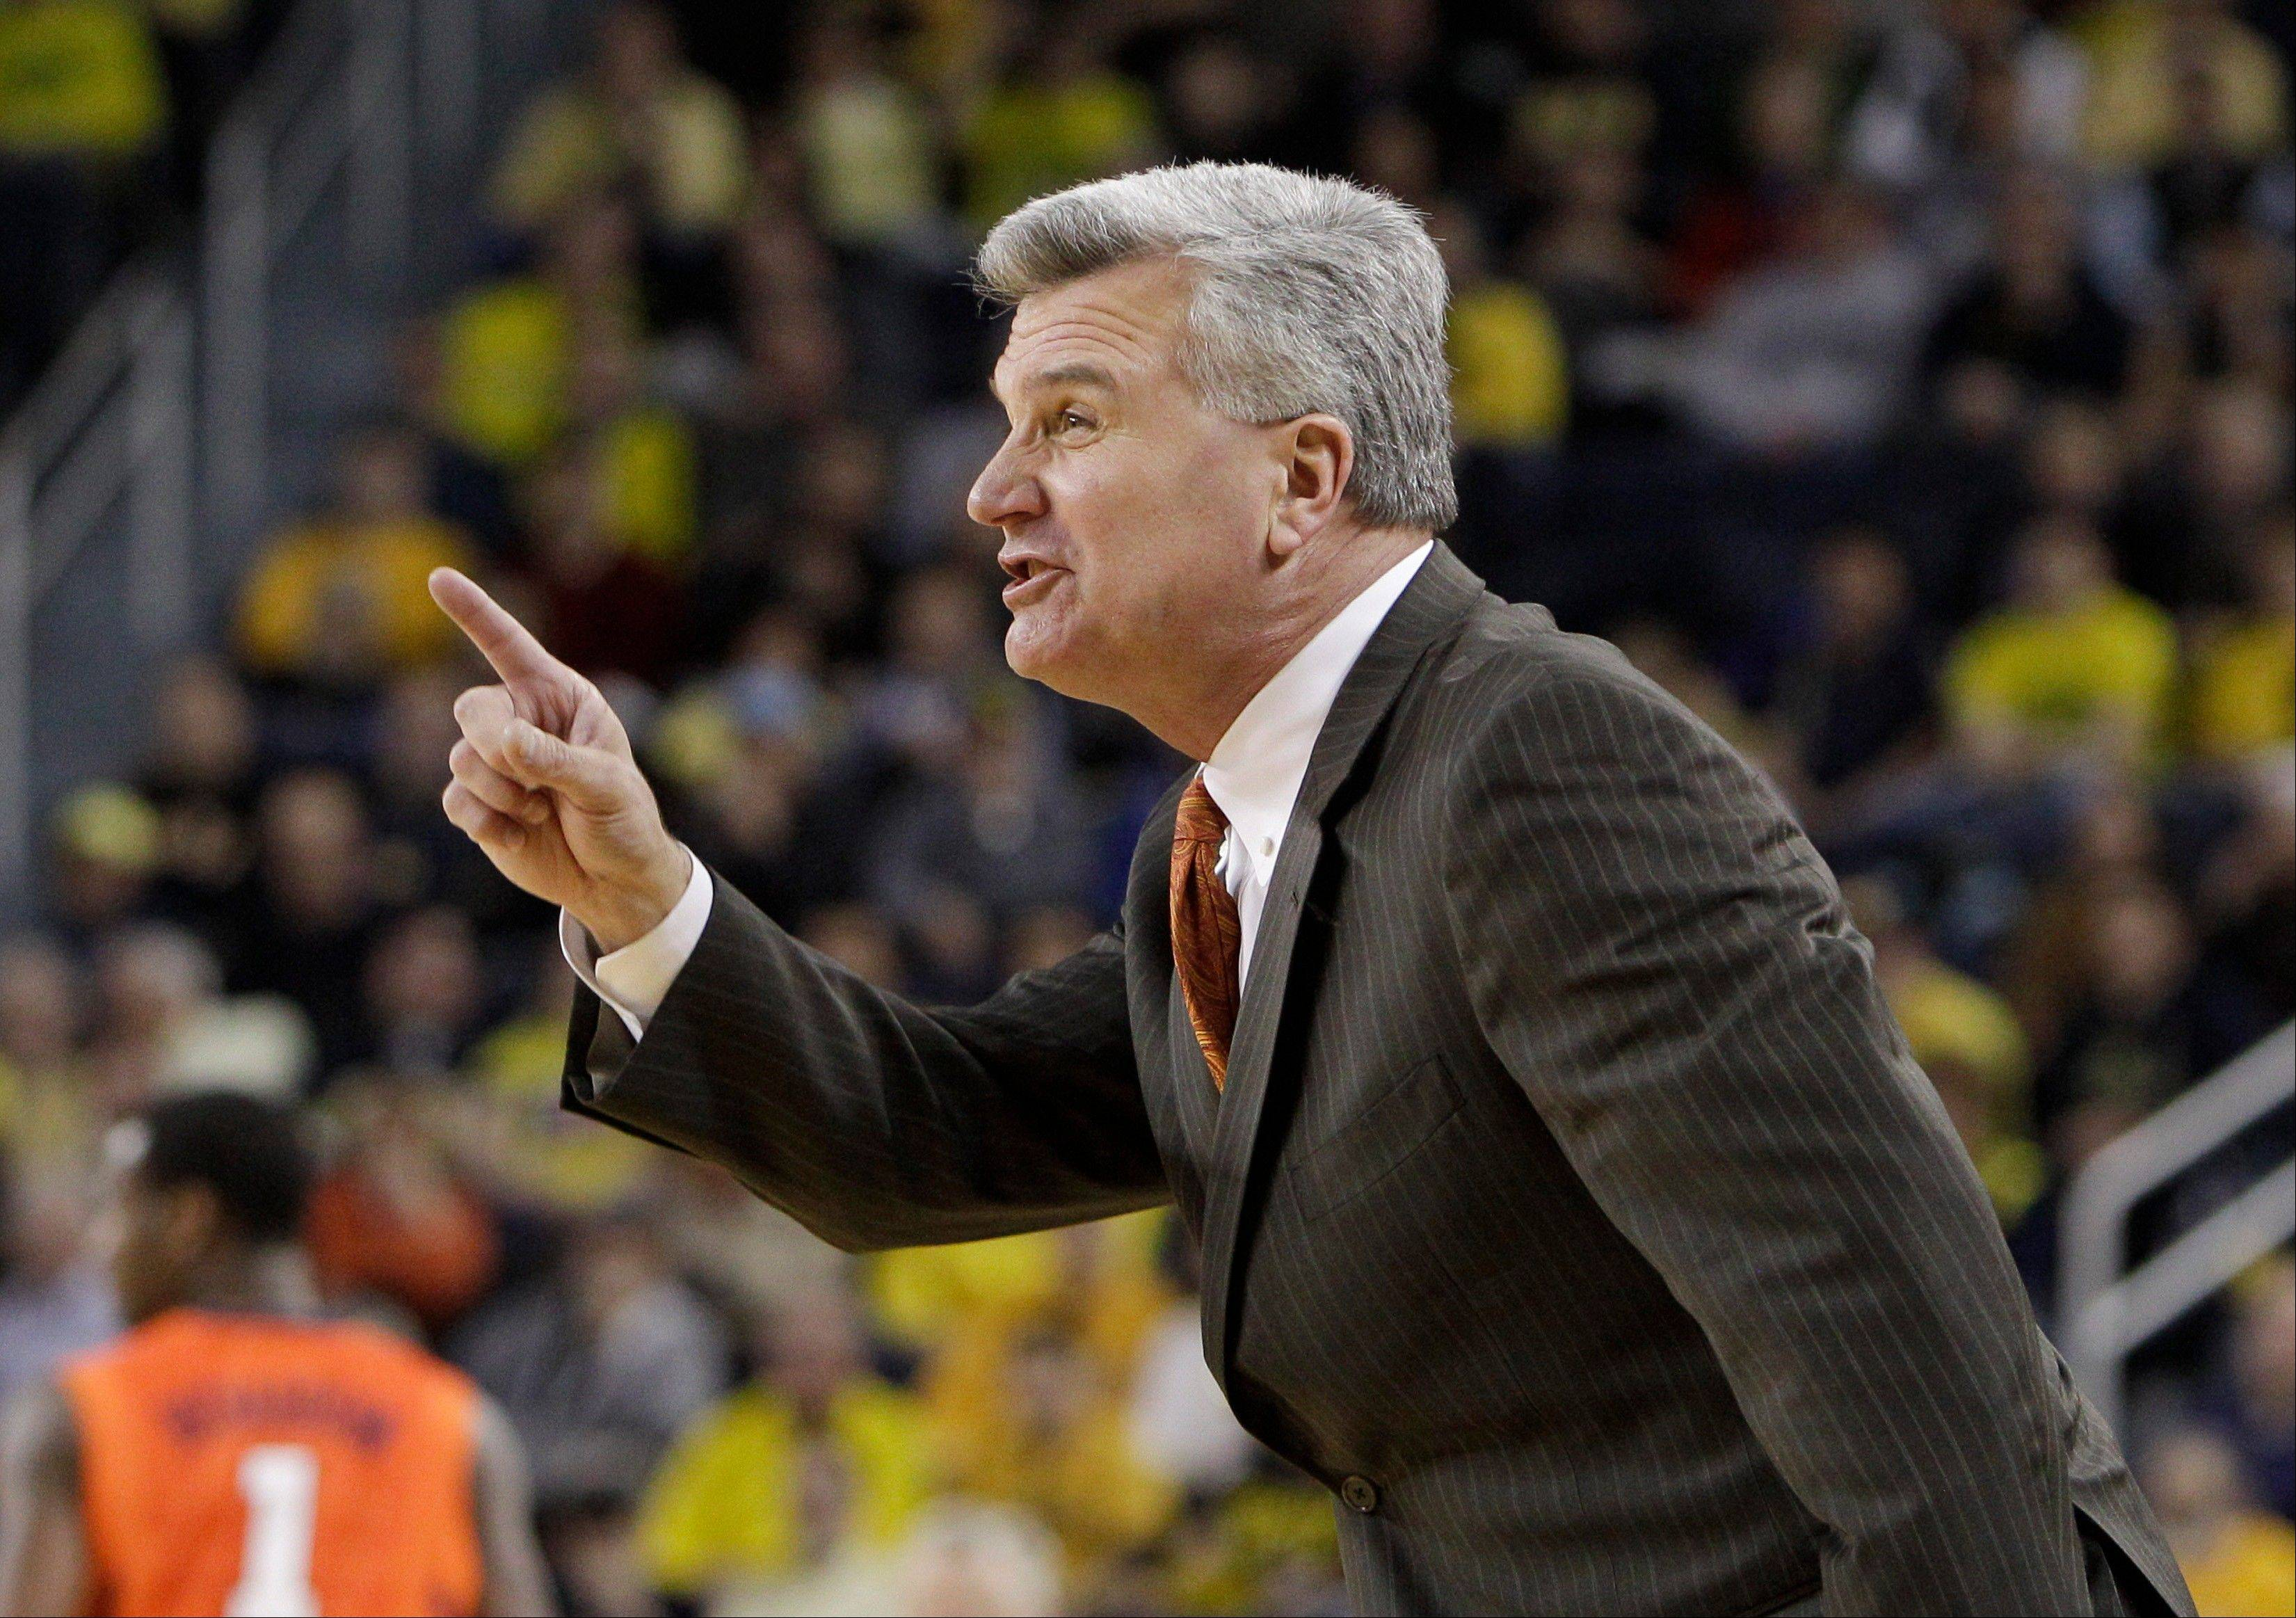 Illinois coach Bruce Weber might just be in danger of squandering what not long ago looked like a certain NCAA Tournament bid.